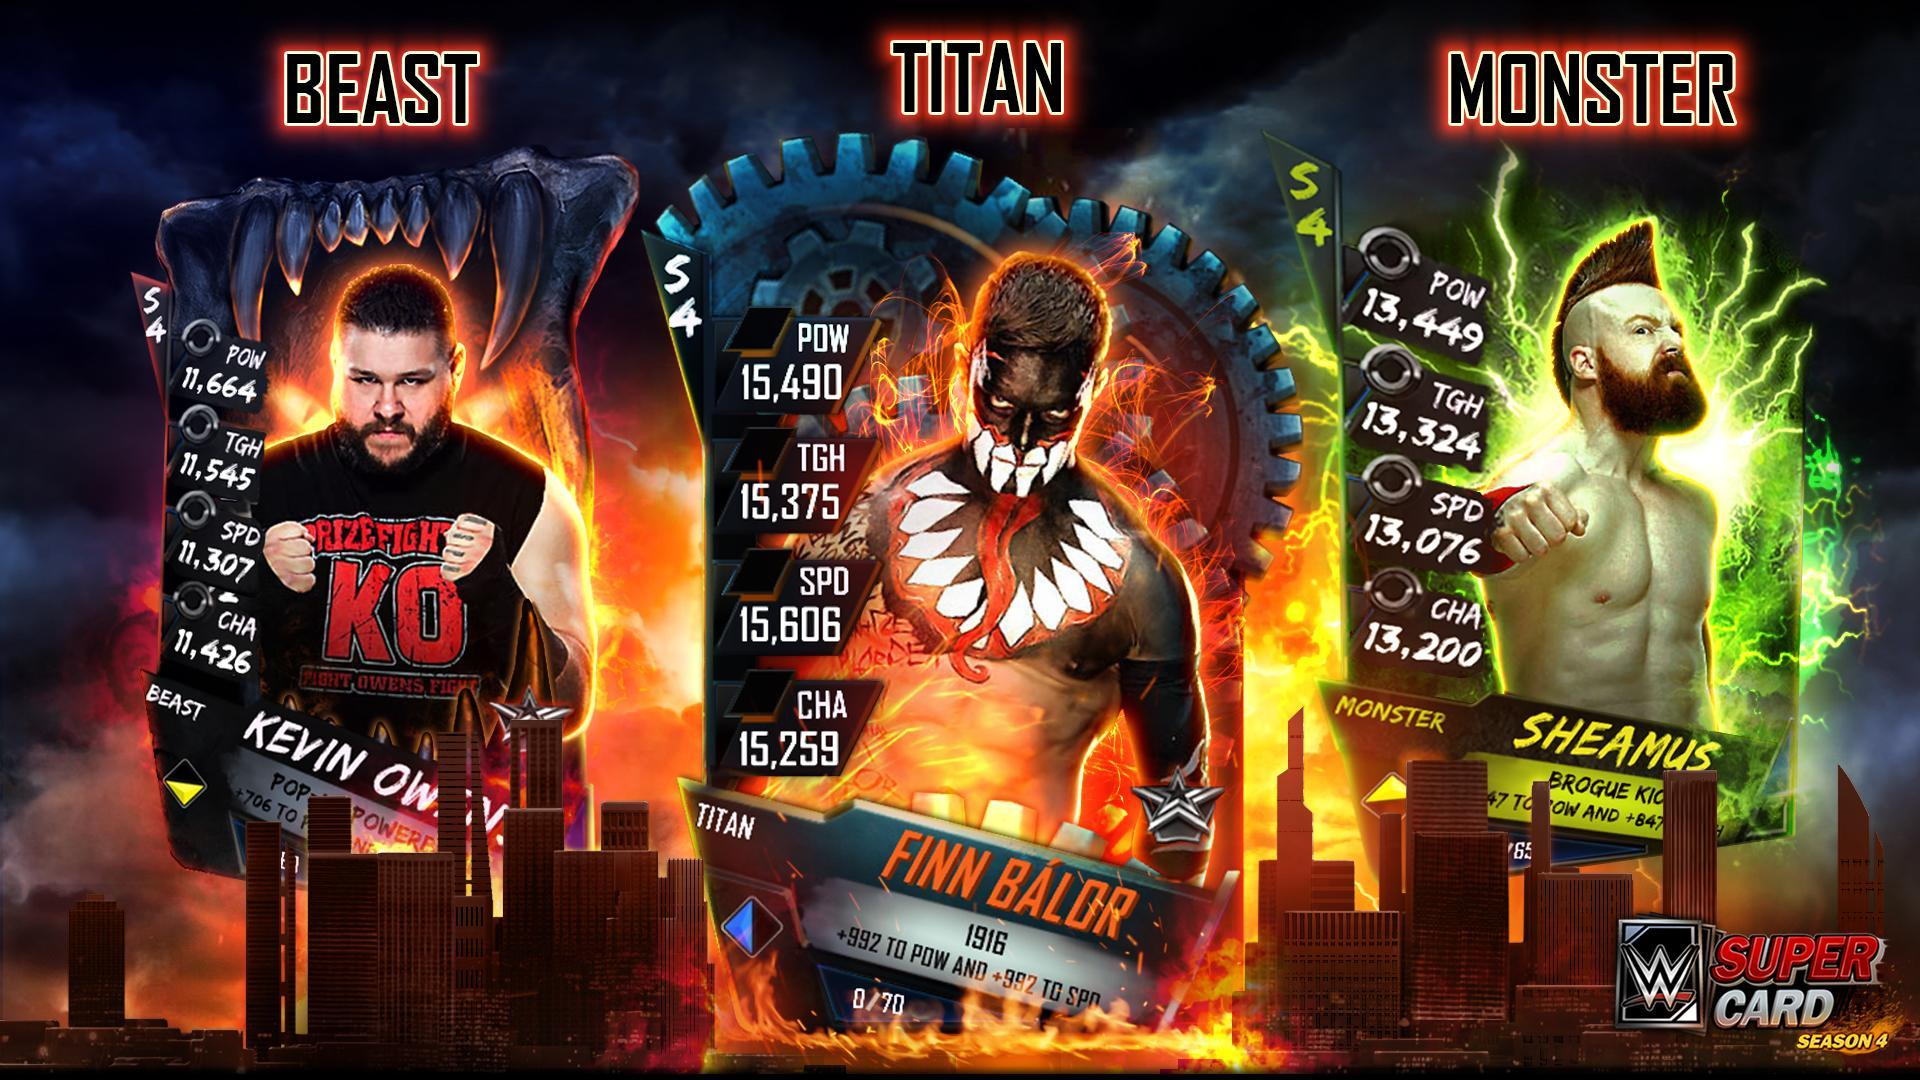 WWE SuperCard Season 4 - New Card Tiers Preview (Beast, Monster, Titan)